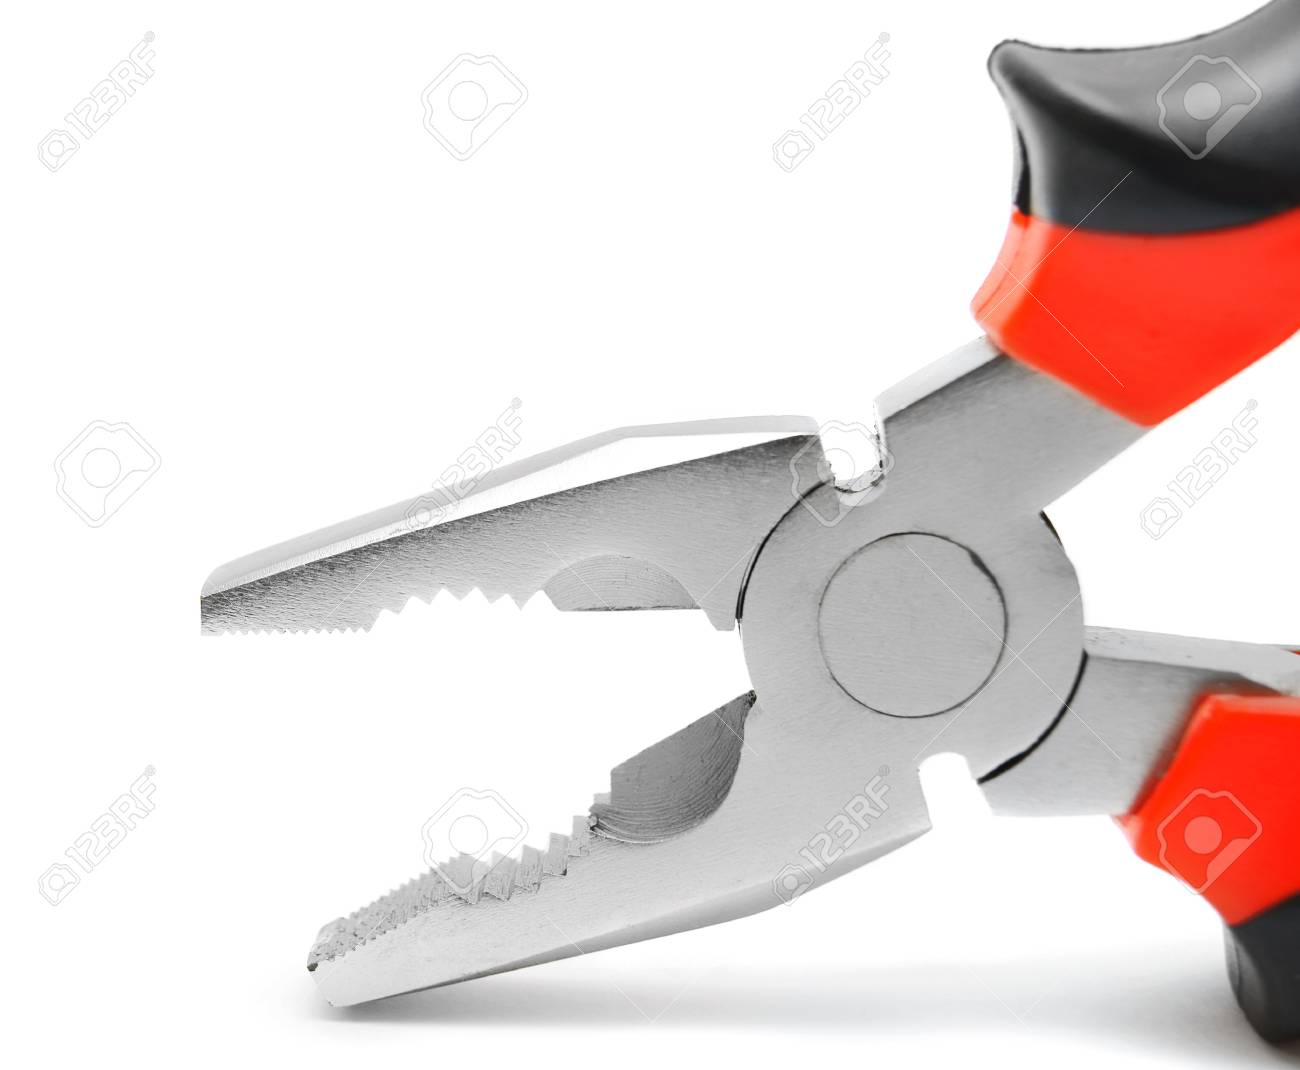 Pliers. On a white background. Stock Photo - 14152267